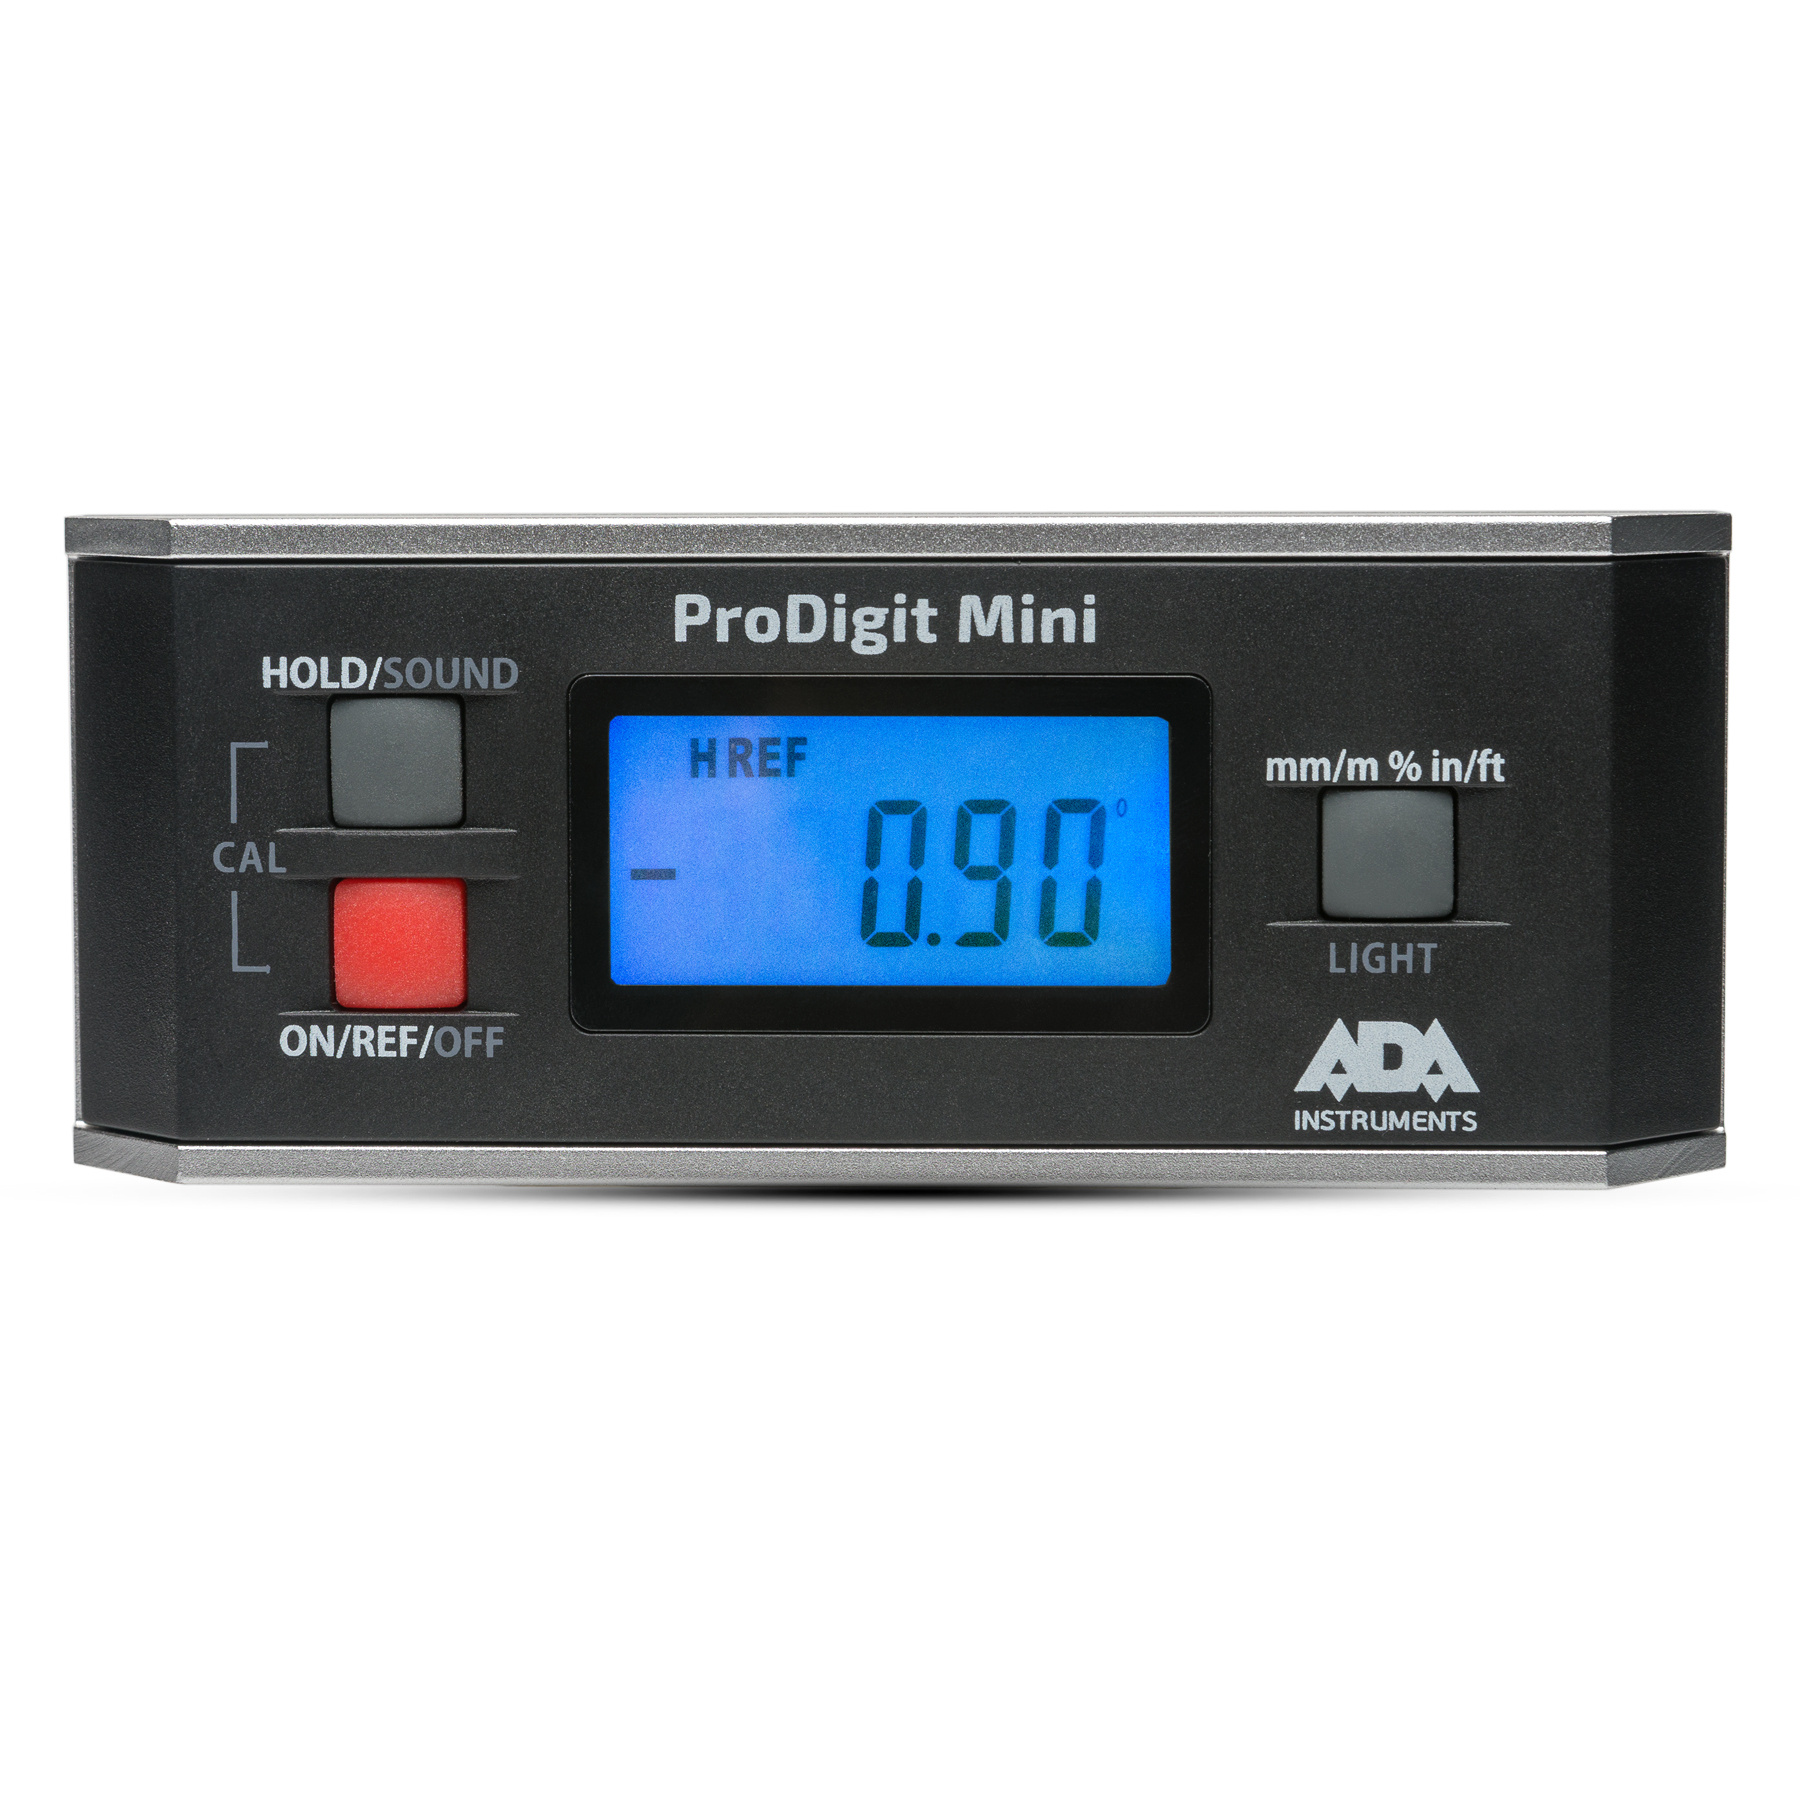 Digital level ADA ProDigit Mini